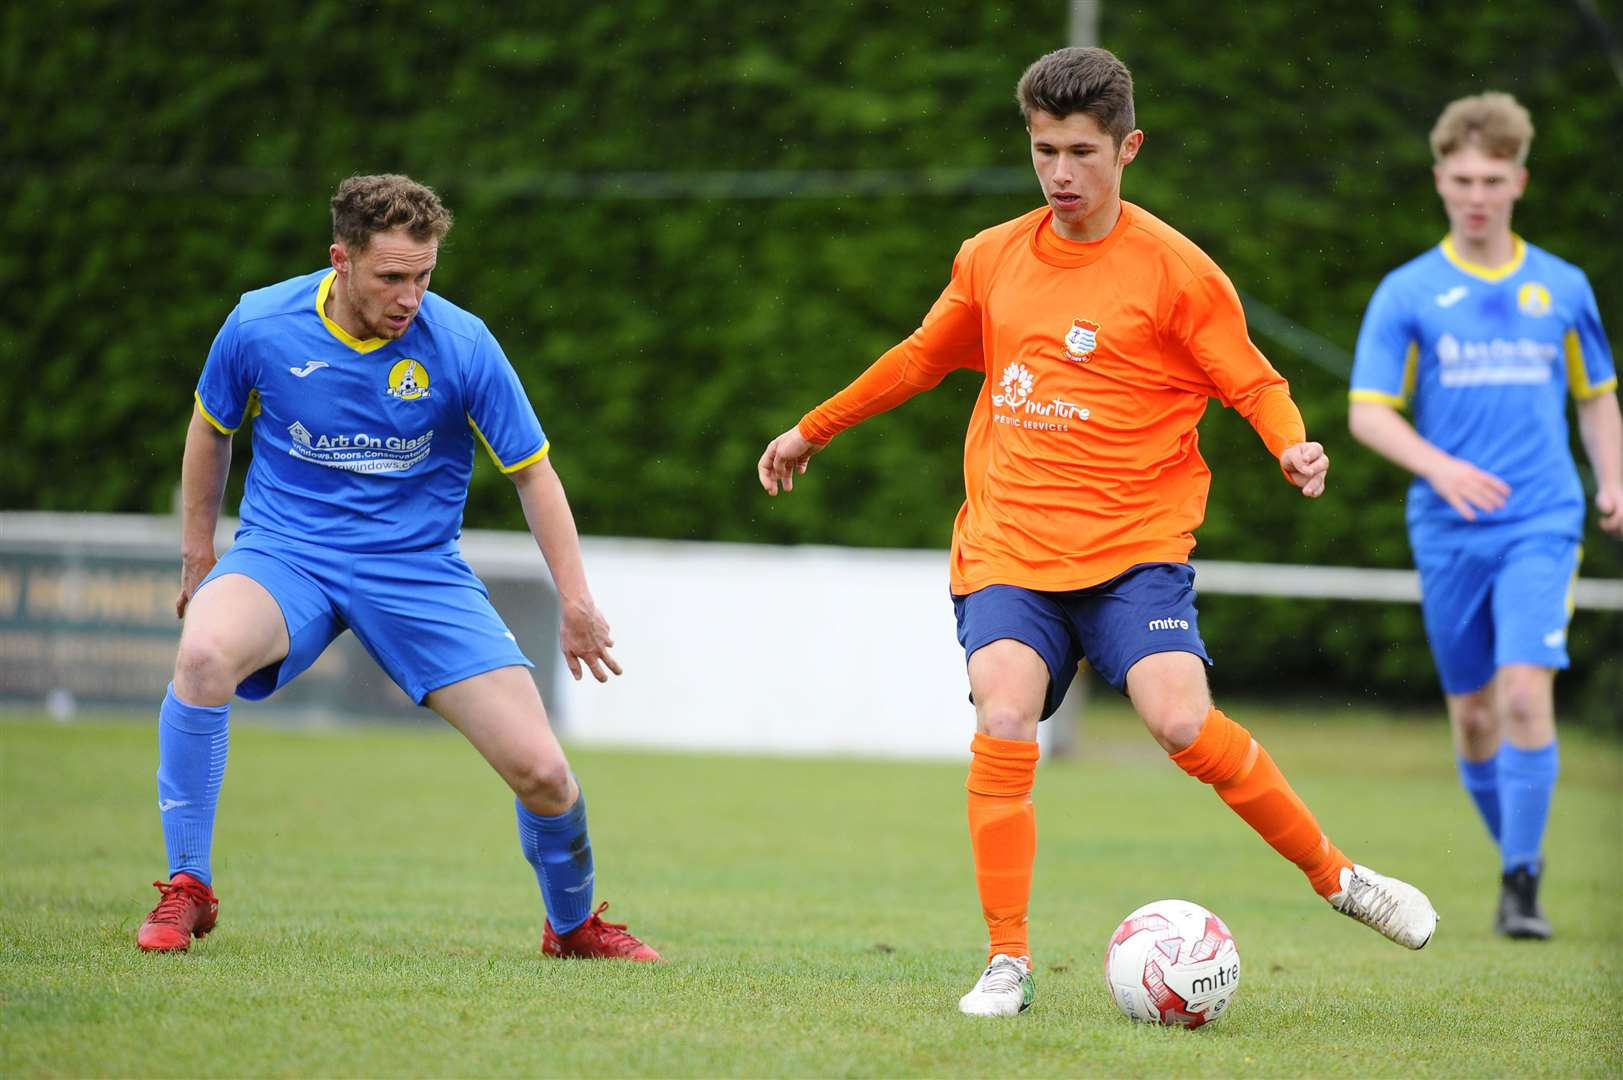 Former Diss midfielder Josh Lucraft has joined Scole United on dual registration from Walsham-le-Willows. Picture: Mark Bullimore